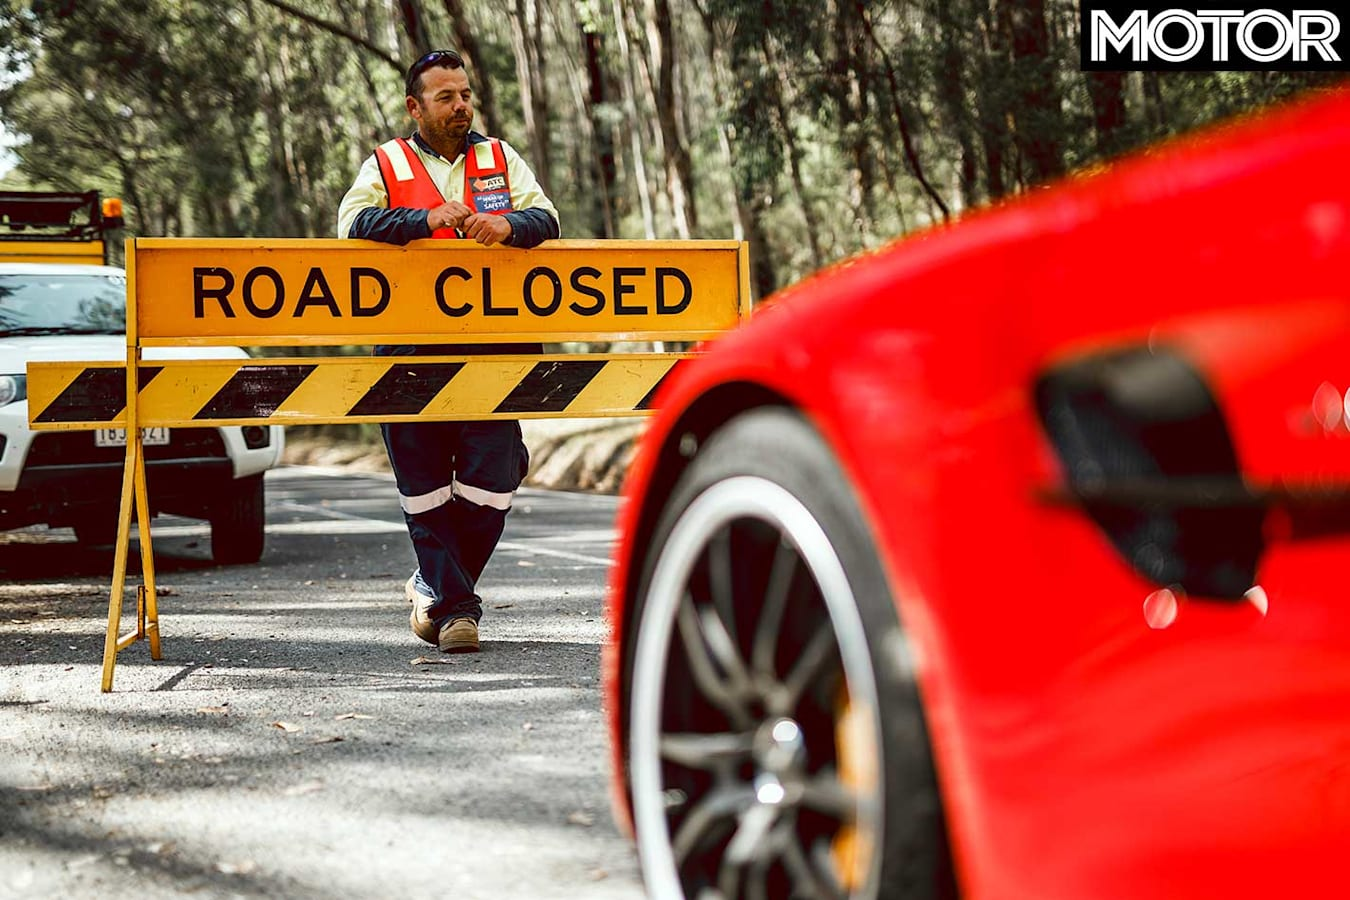 2019 Mercedes AMG GT R 12 Hours Review Road Closure Jpg